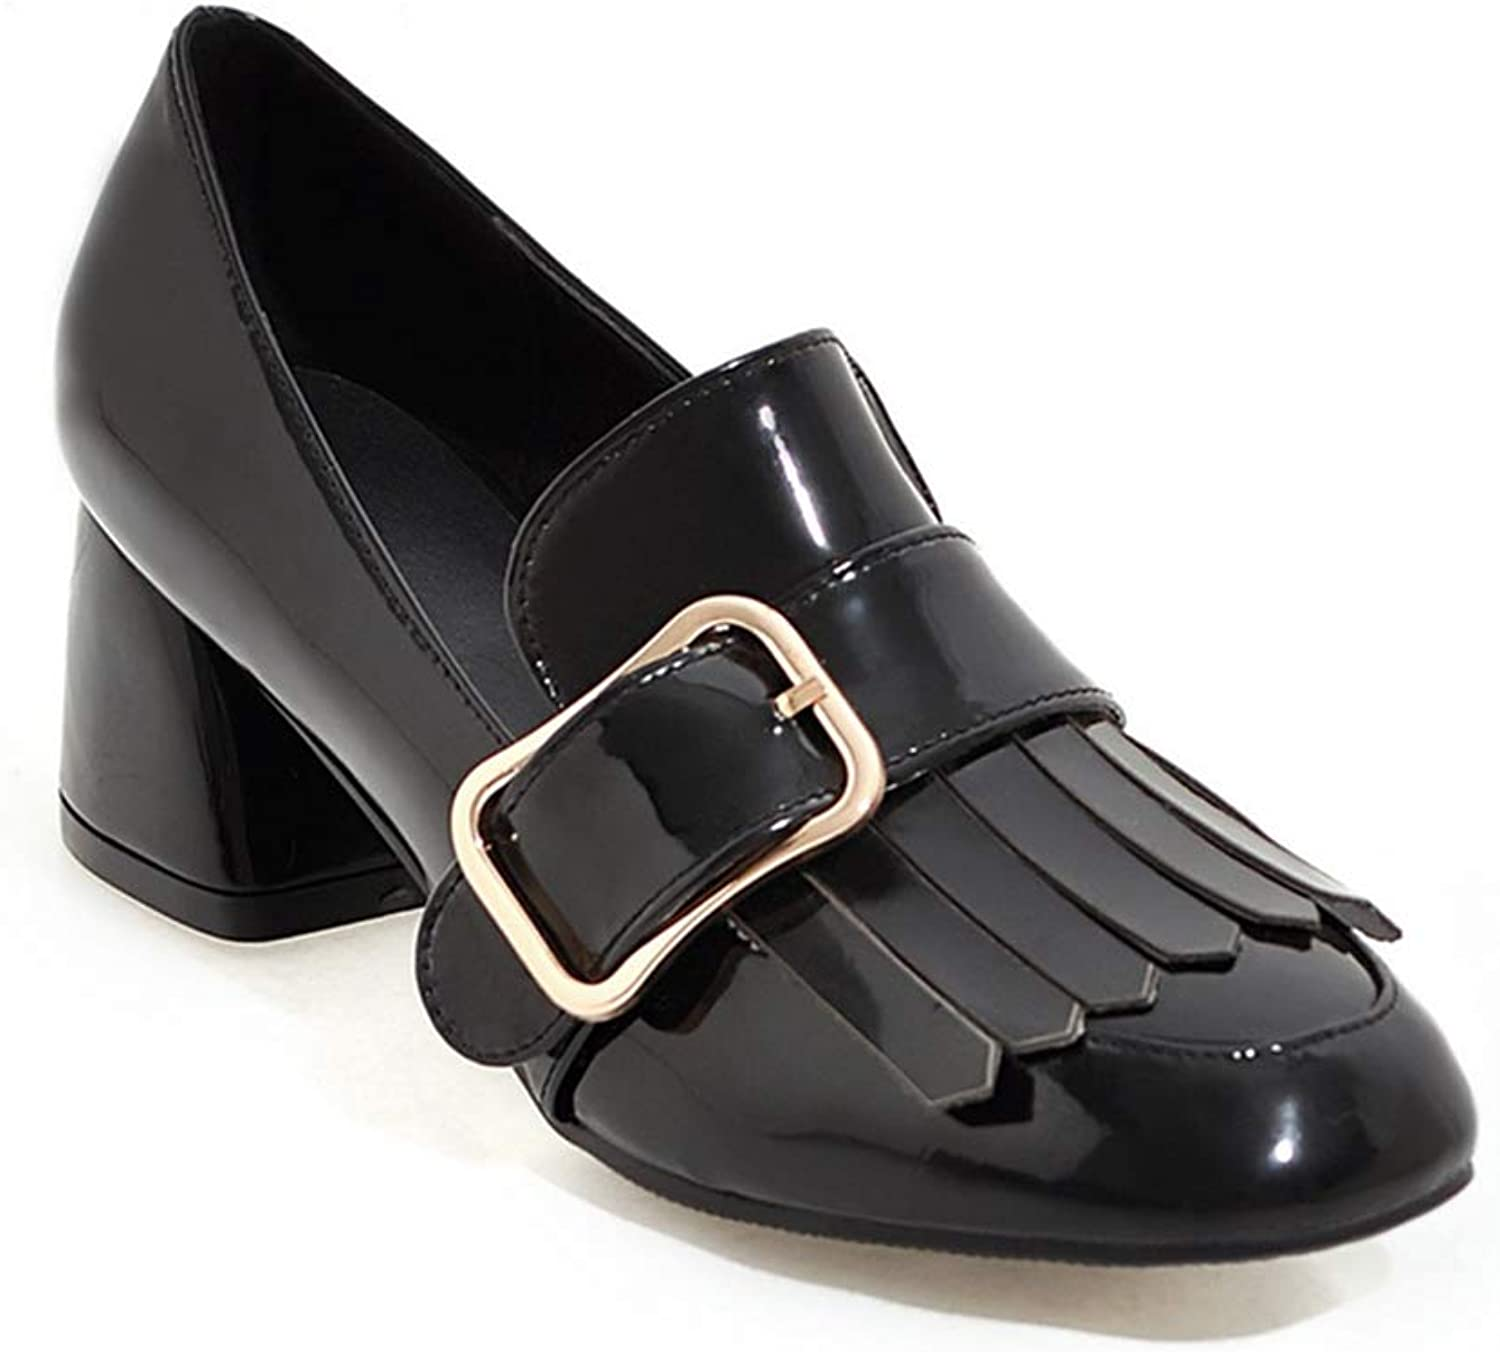 GIY Women's Square Toe Peny Loafer Pump Tassel Buckle Leather Chunky Mid Heel Uniform Dress Oxfords shoes